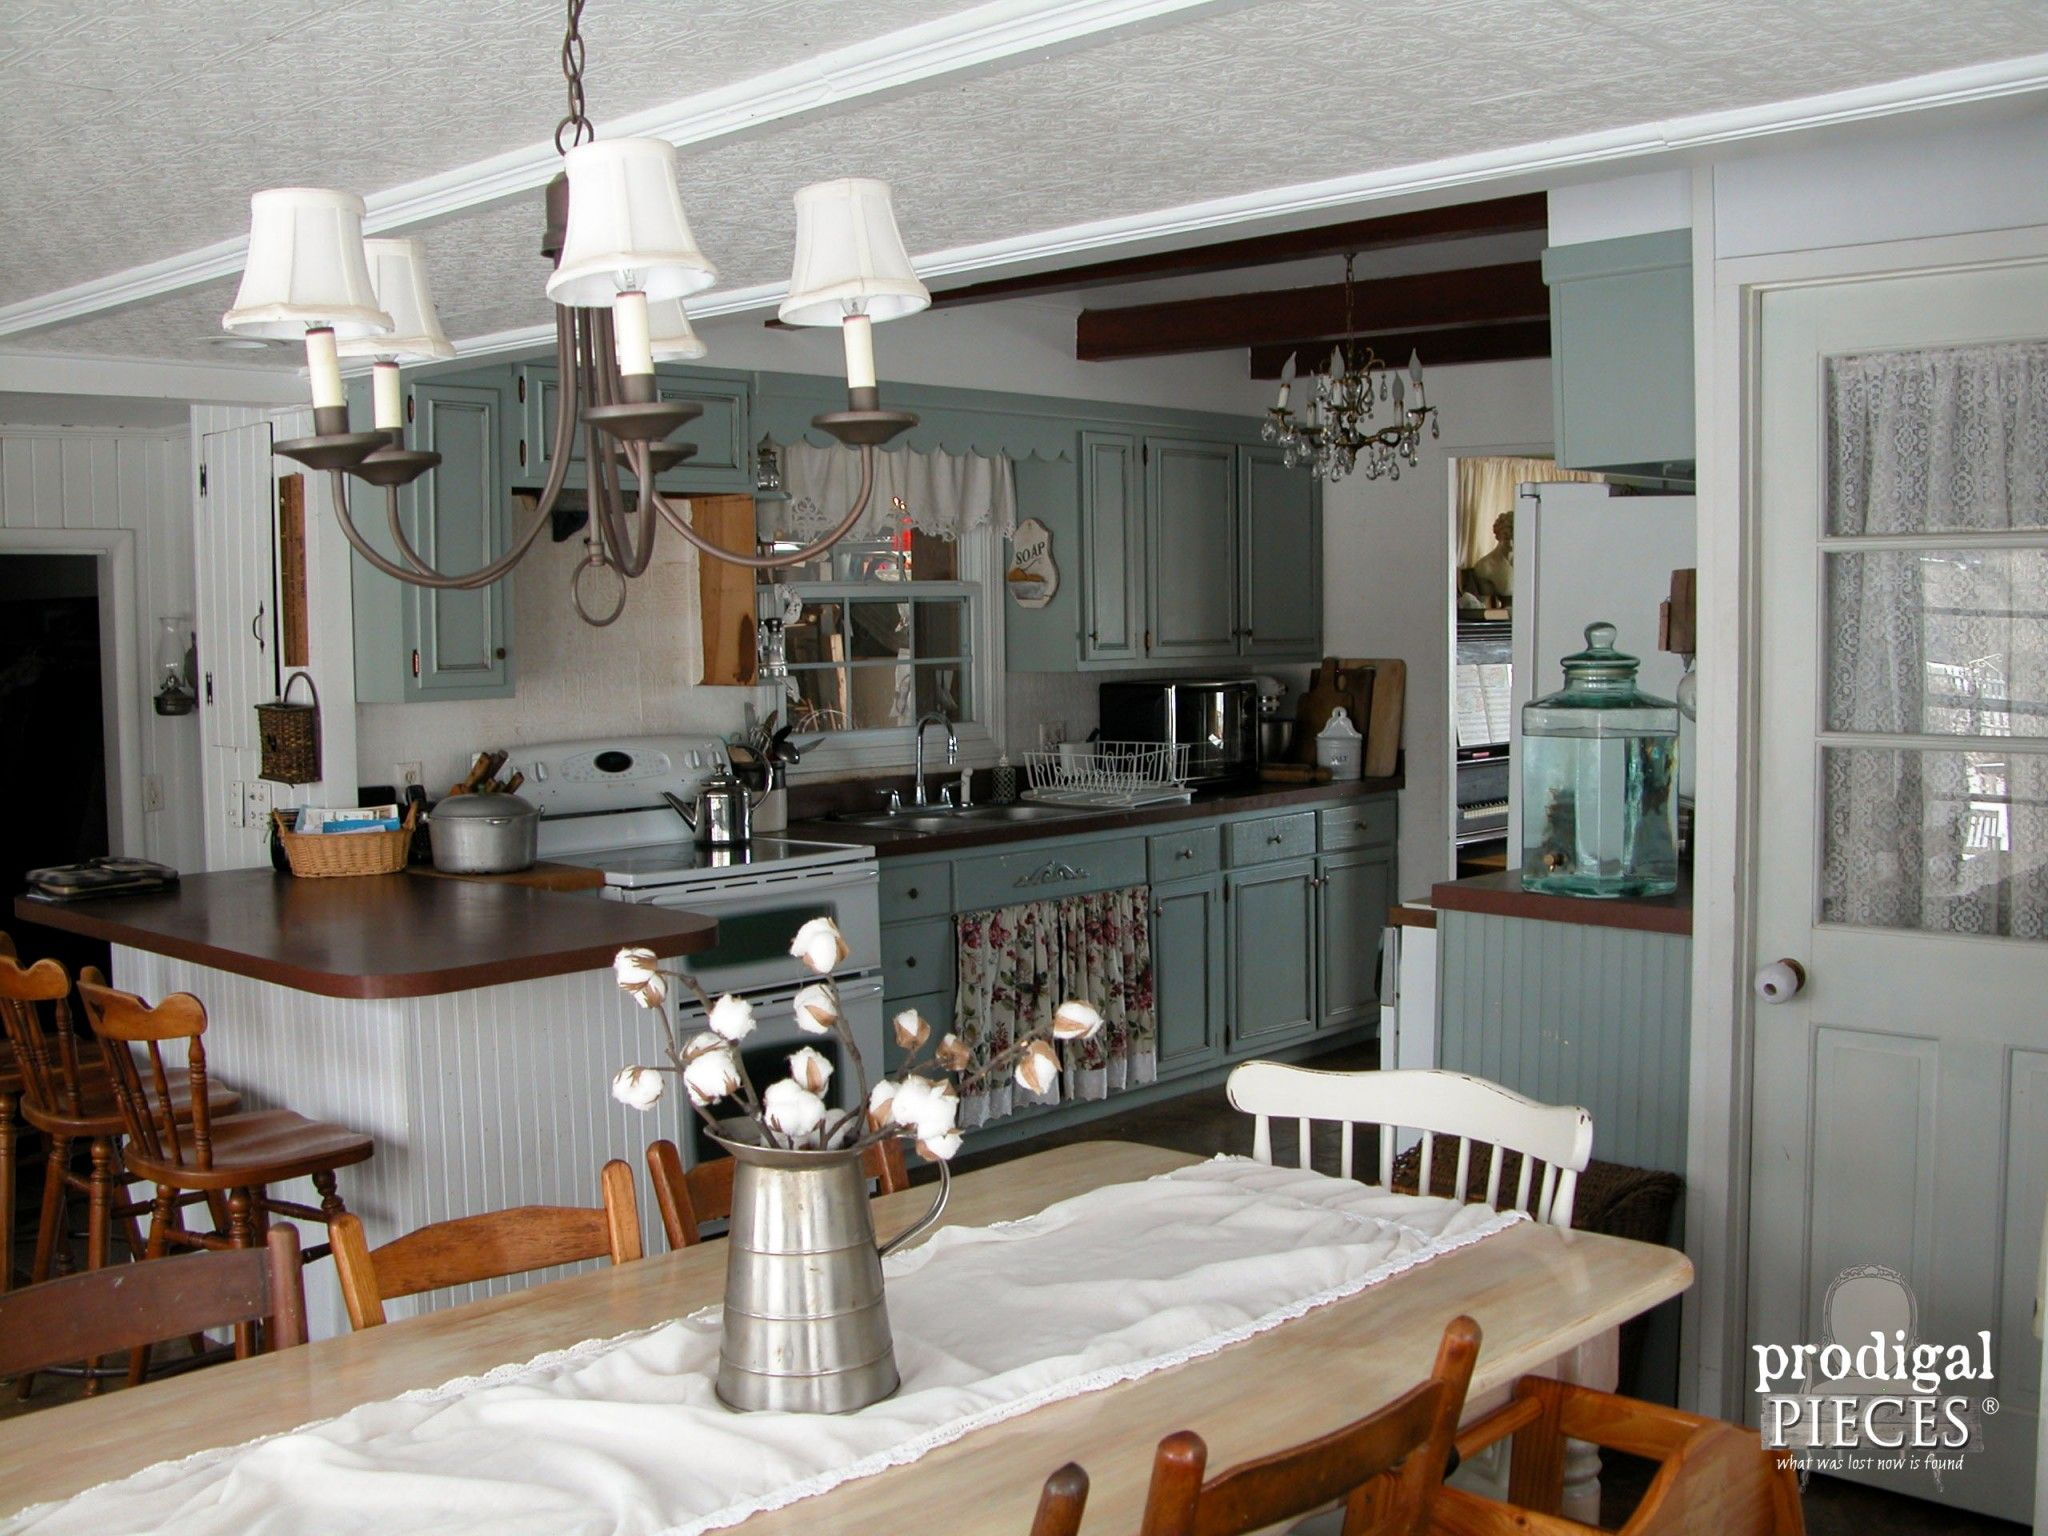 Choosing kitchen flooring can be daunting task. Follow along as we remodel our kitchen and share our tips and trick with you to make the choice an easy one.